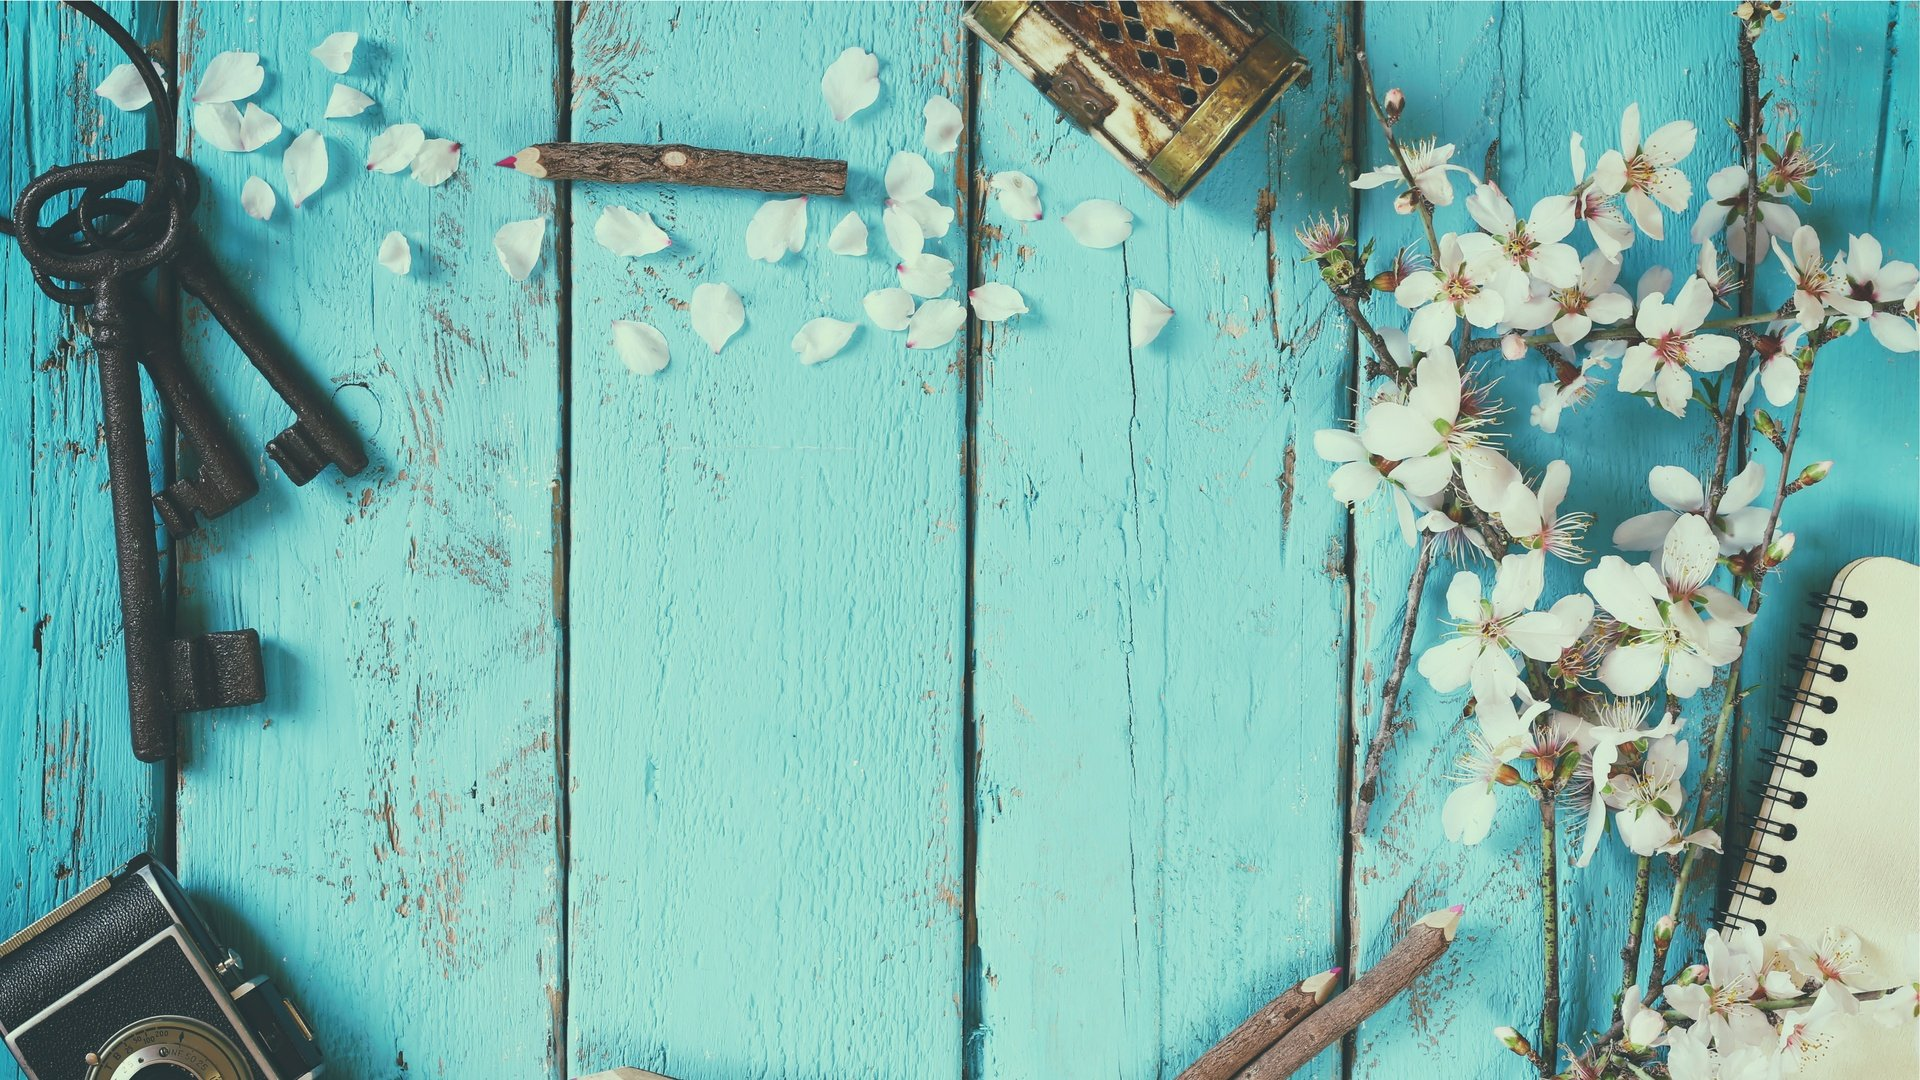 shutterstock_381490609_Wood_keys_flowers-1.jpg